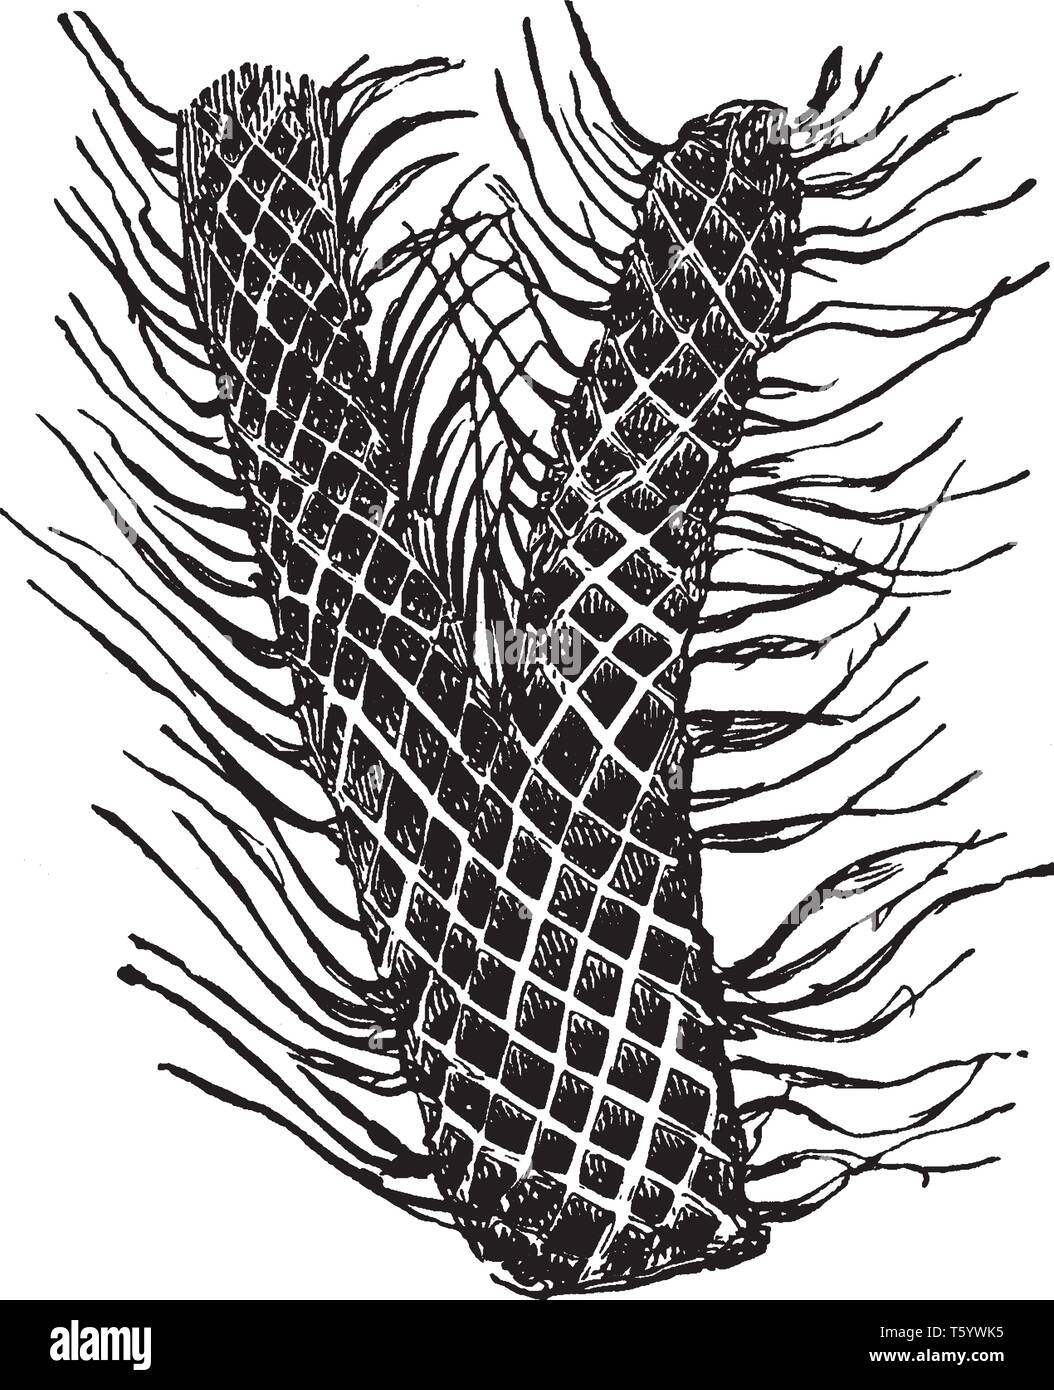 This is the portion of Lepidodendron plant. Stem looks like a mechanism in a dense spiral. The stem outer surface of the bark is marked by lozenge-sha Stock Vector